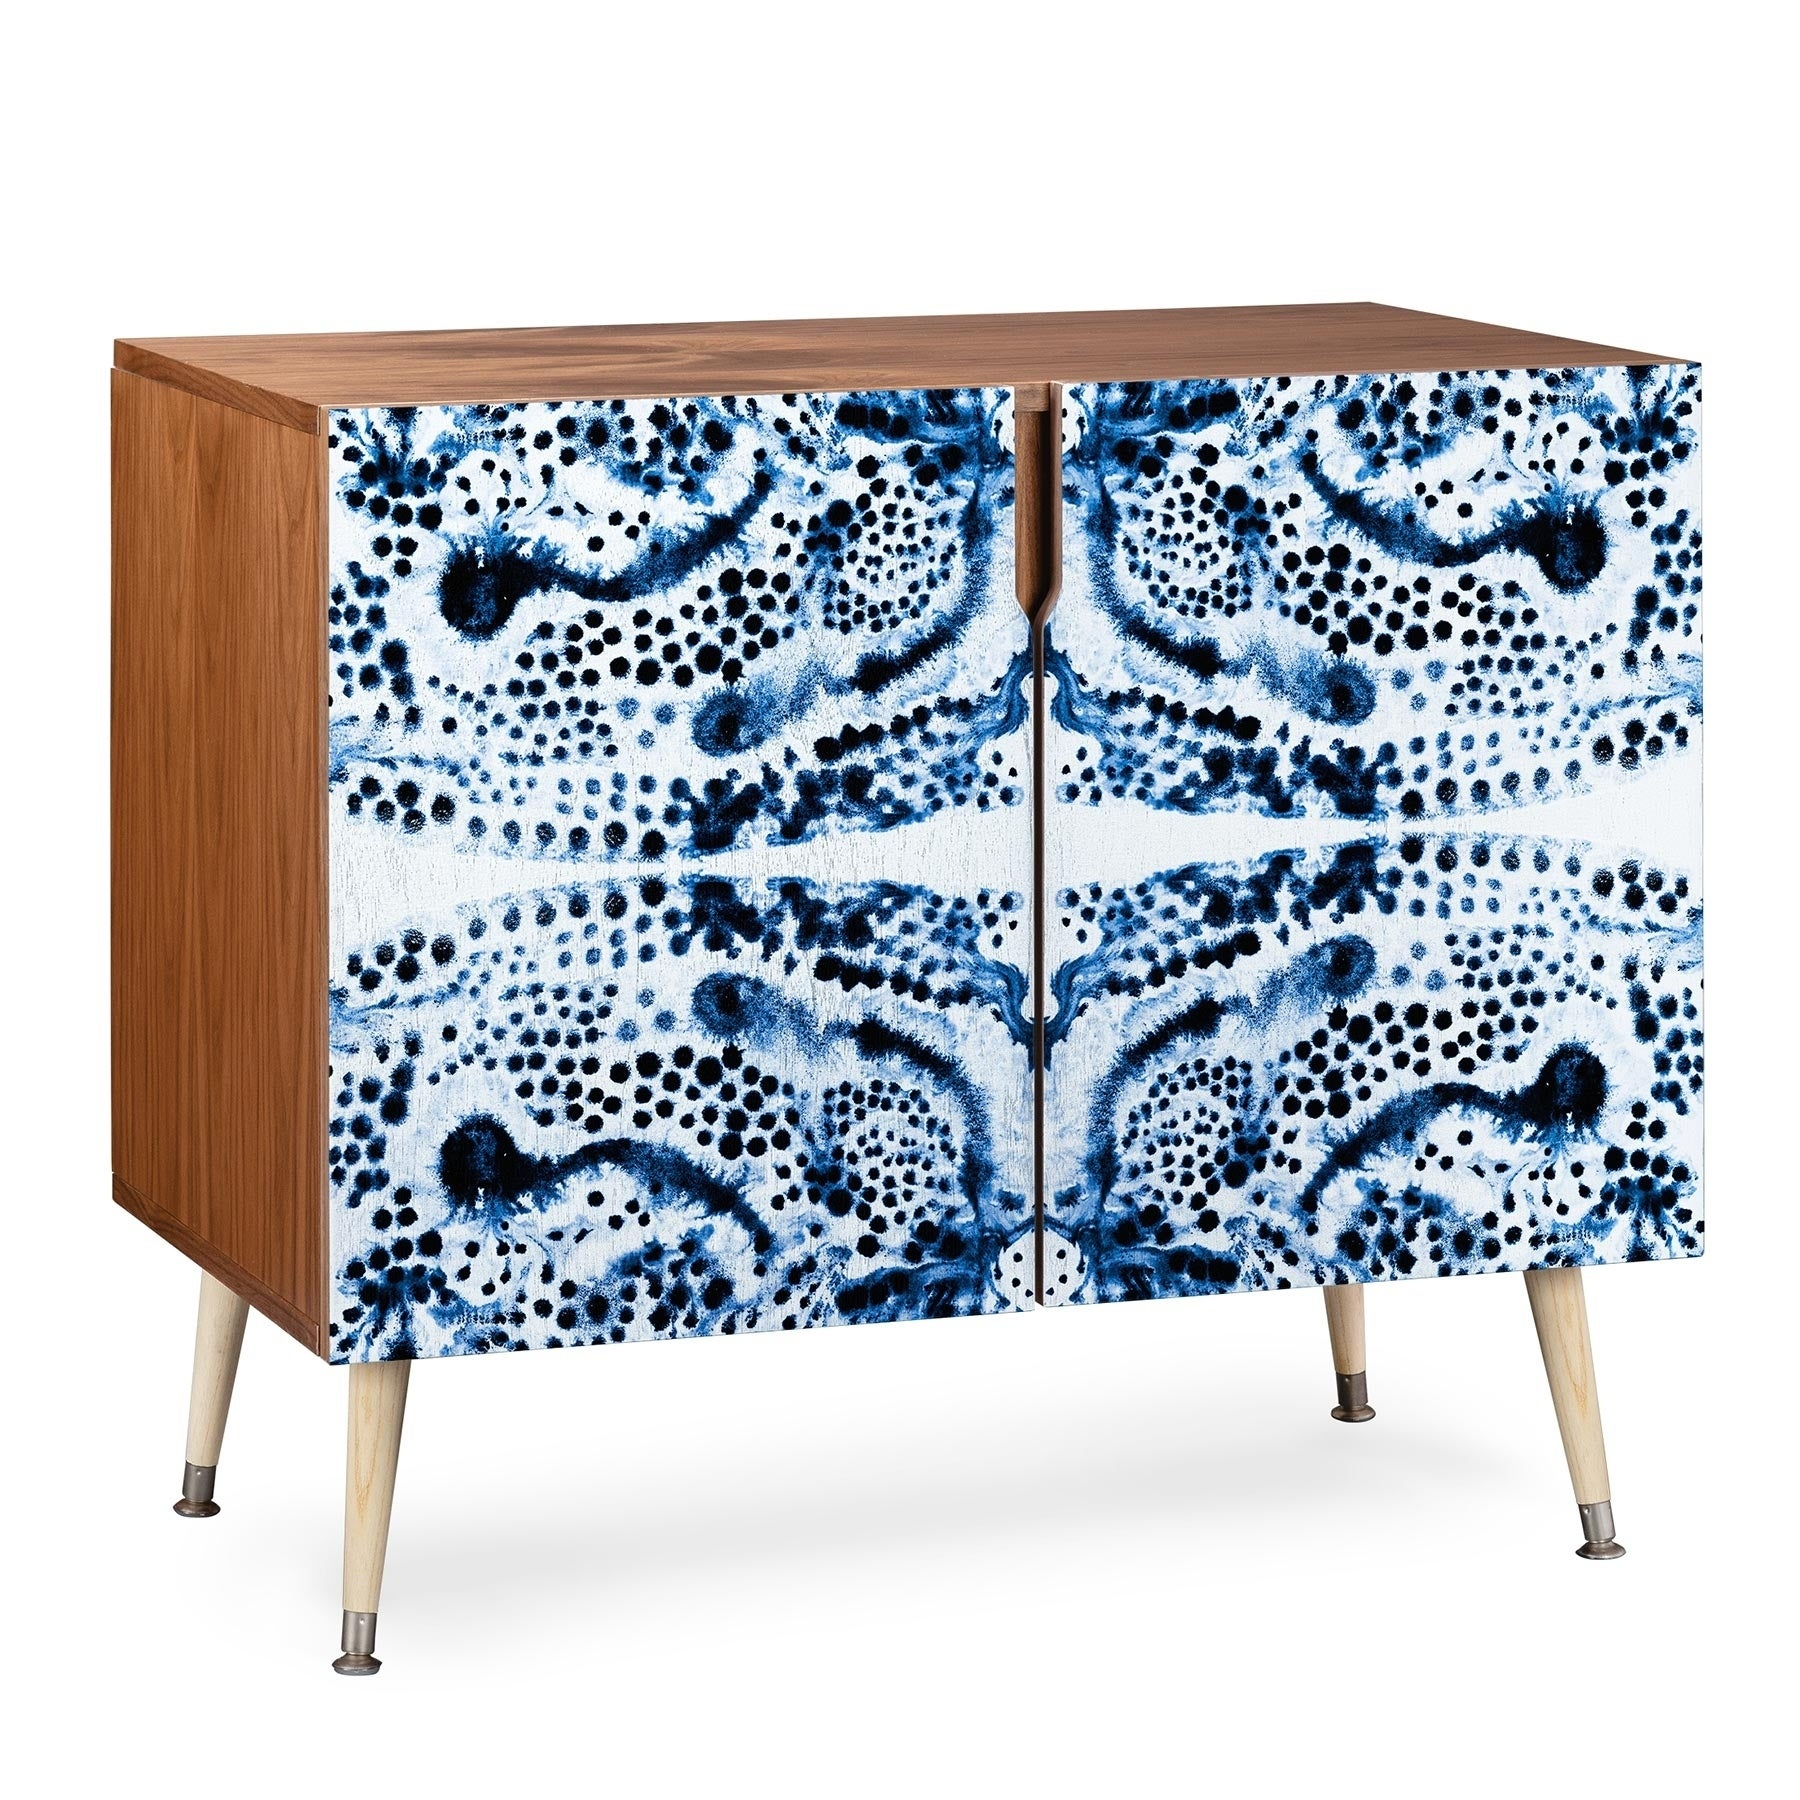 Deny Designs Symmetric Blue Swirl Credenza (birch Or Walnut, 3 Leg Options) Intended For Wooden Deconstruction Credenzas (View 5 of 30)